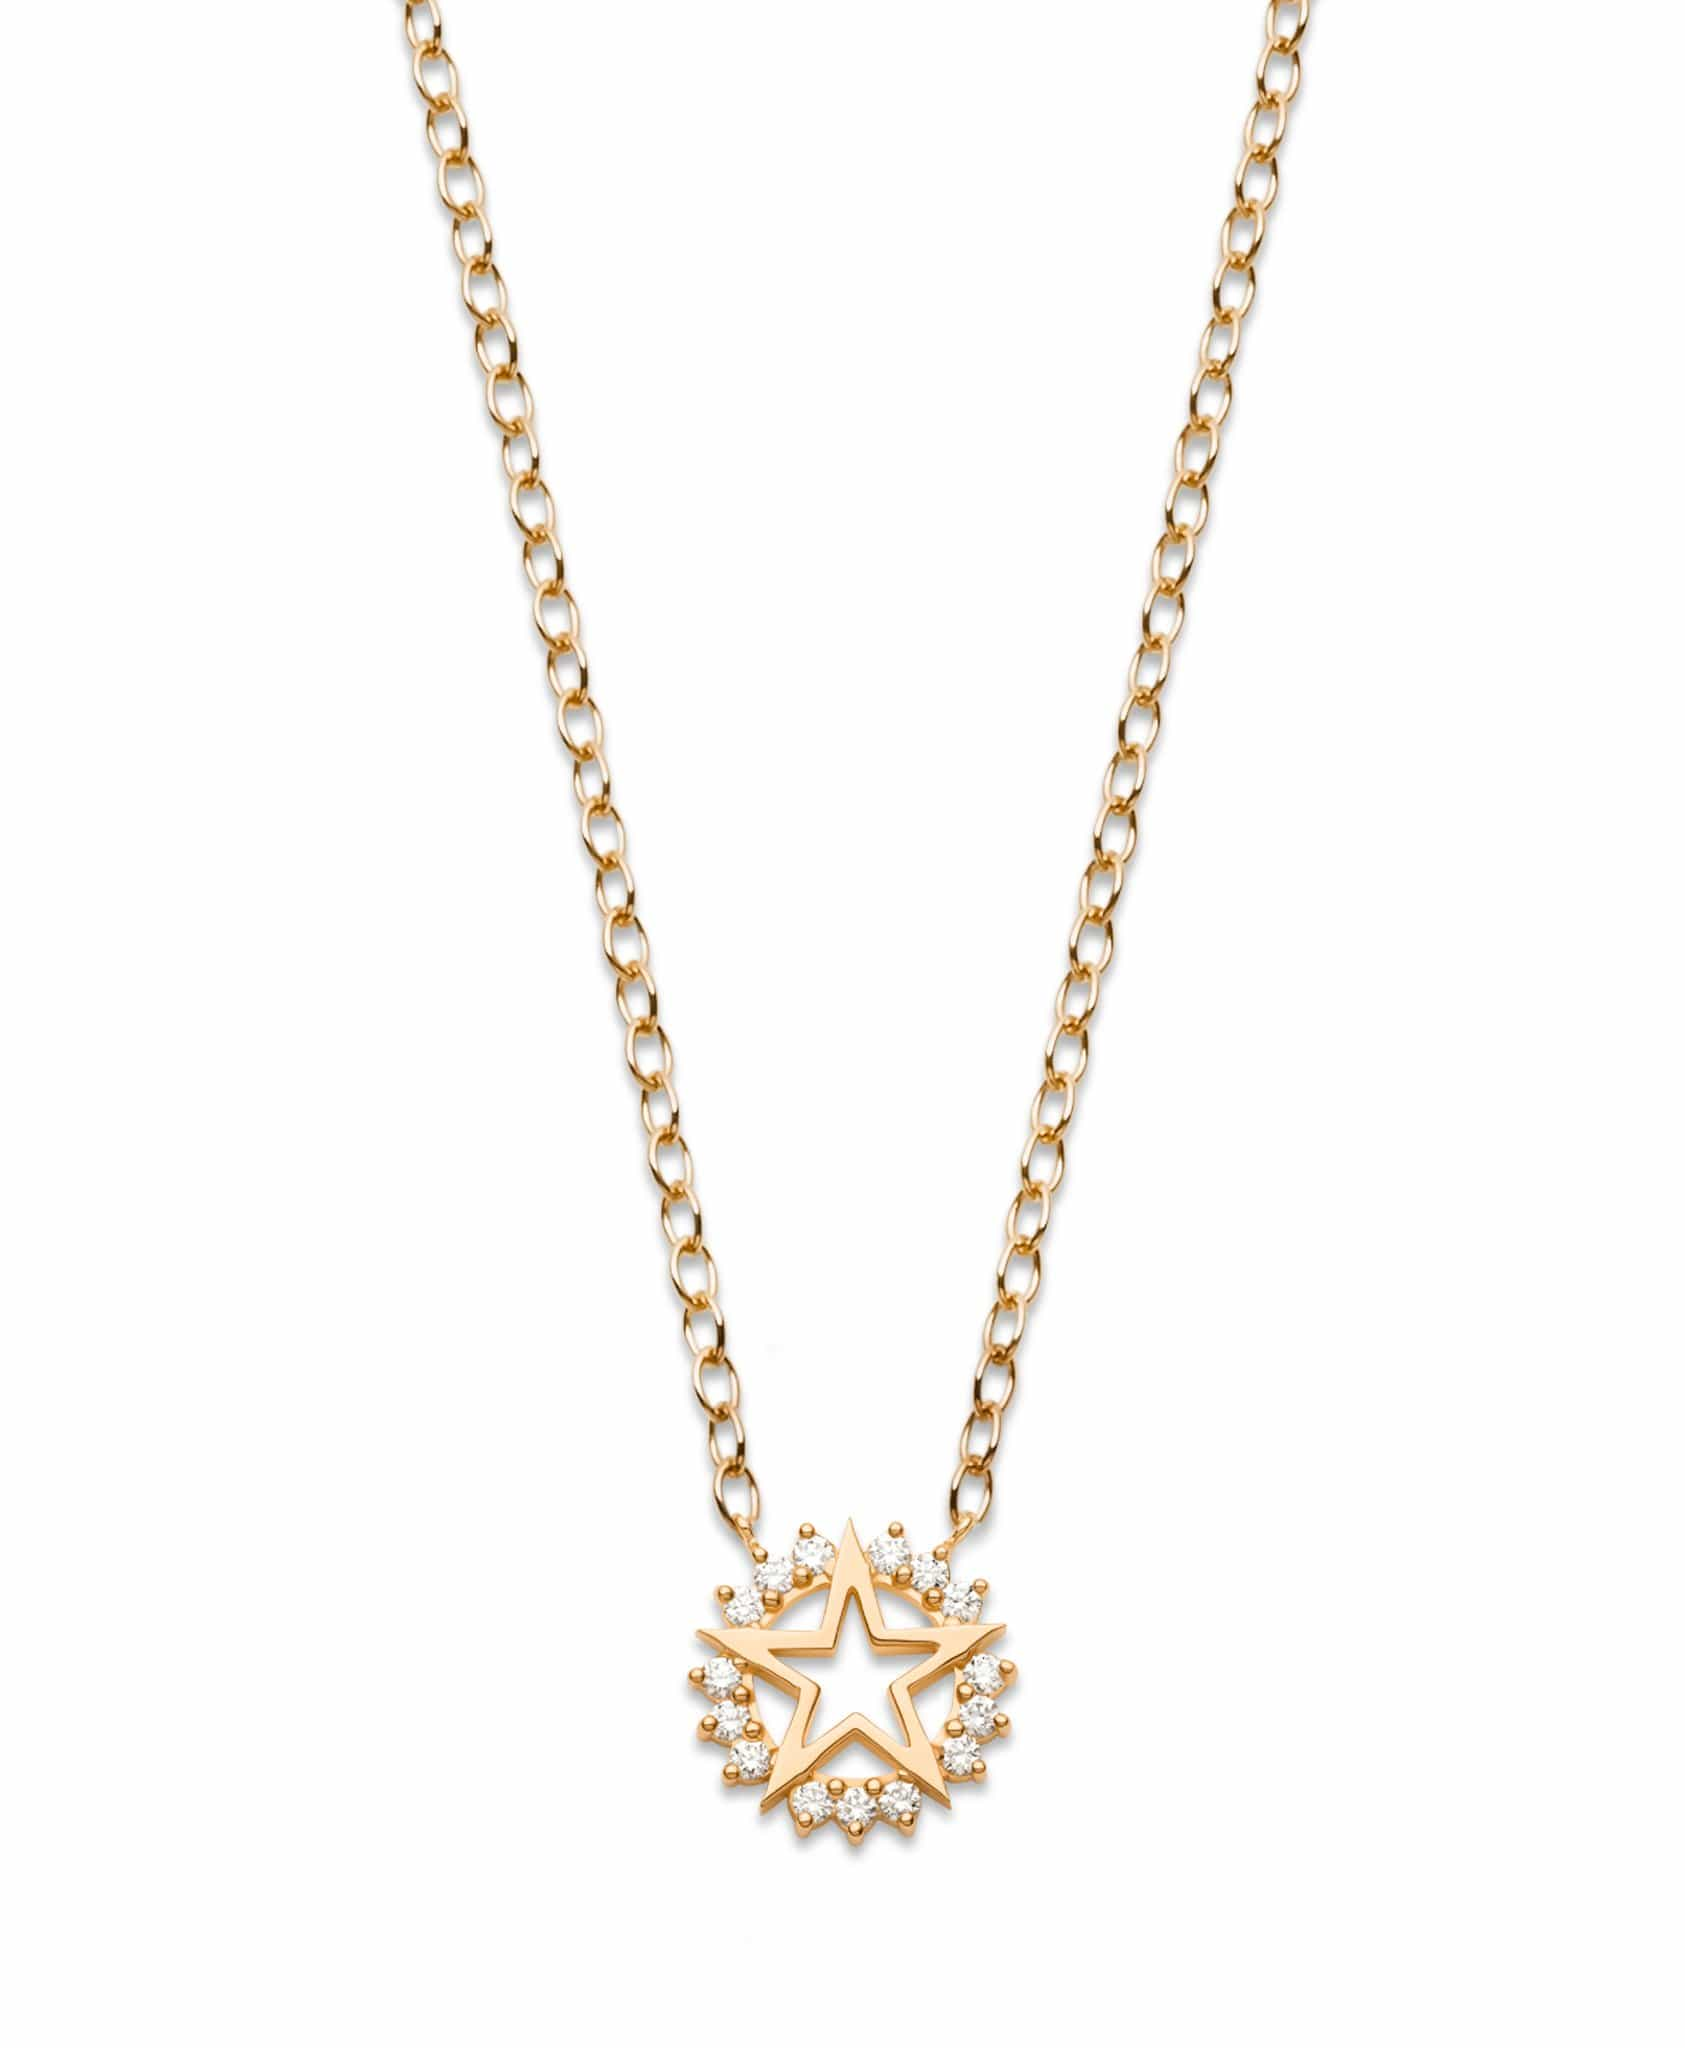 Medium Star Pendant: Discover Luxury Fine Jewelry | Nouvel Heritage || Rose Gold